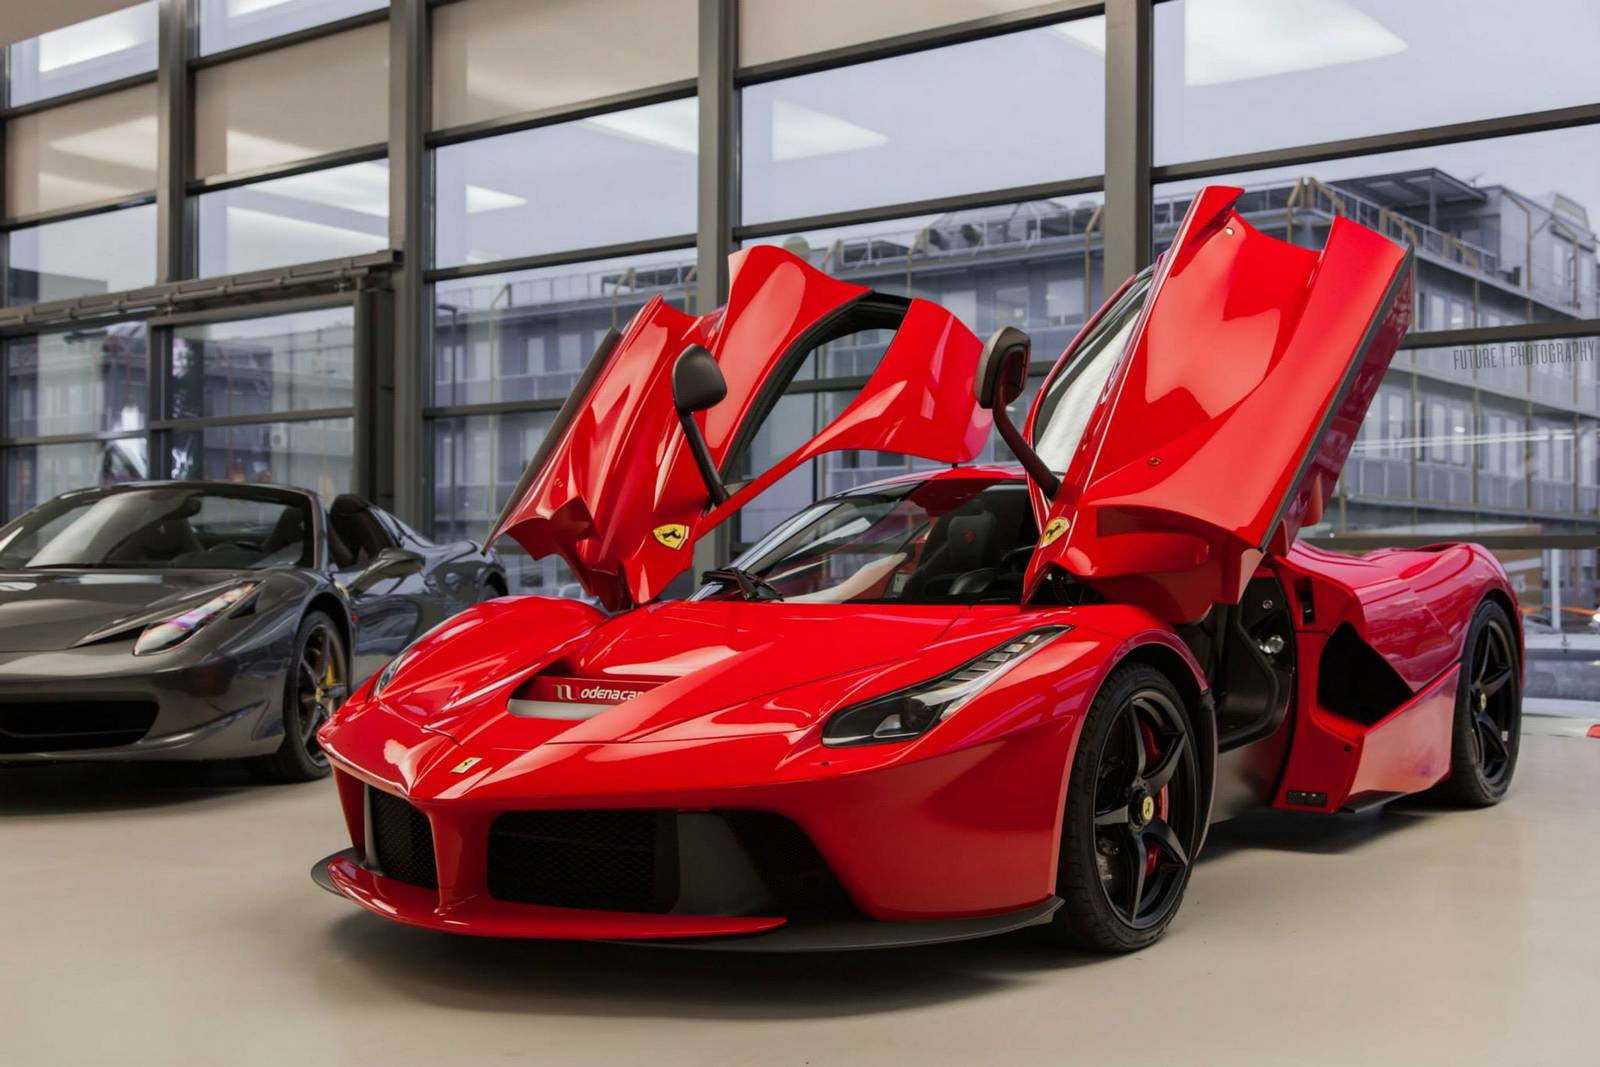 NO 9 FASTEST CARS IN THE WORLD